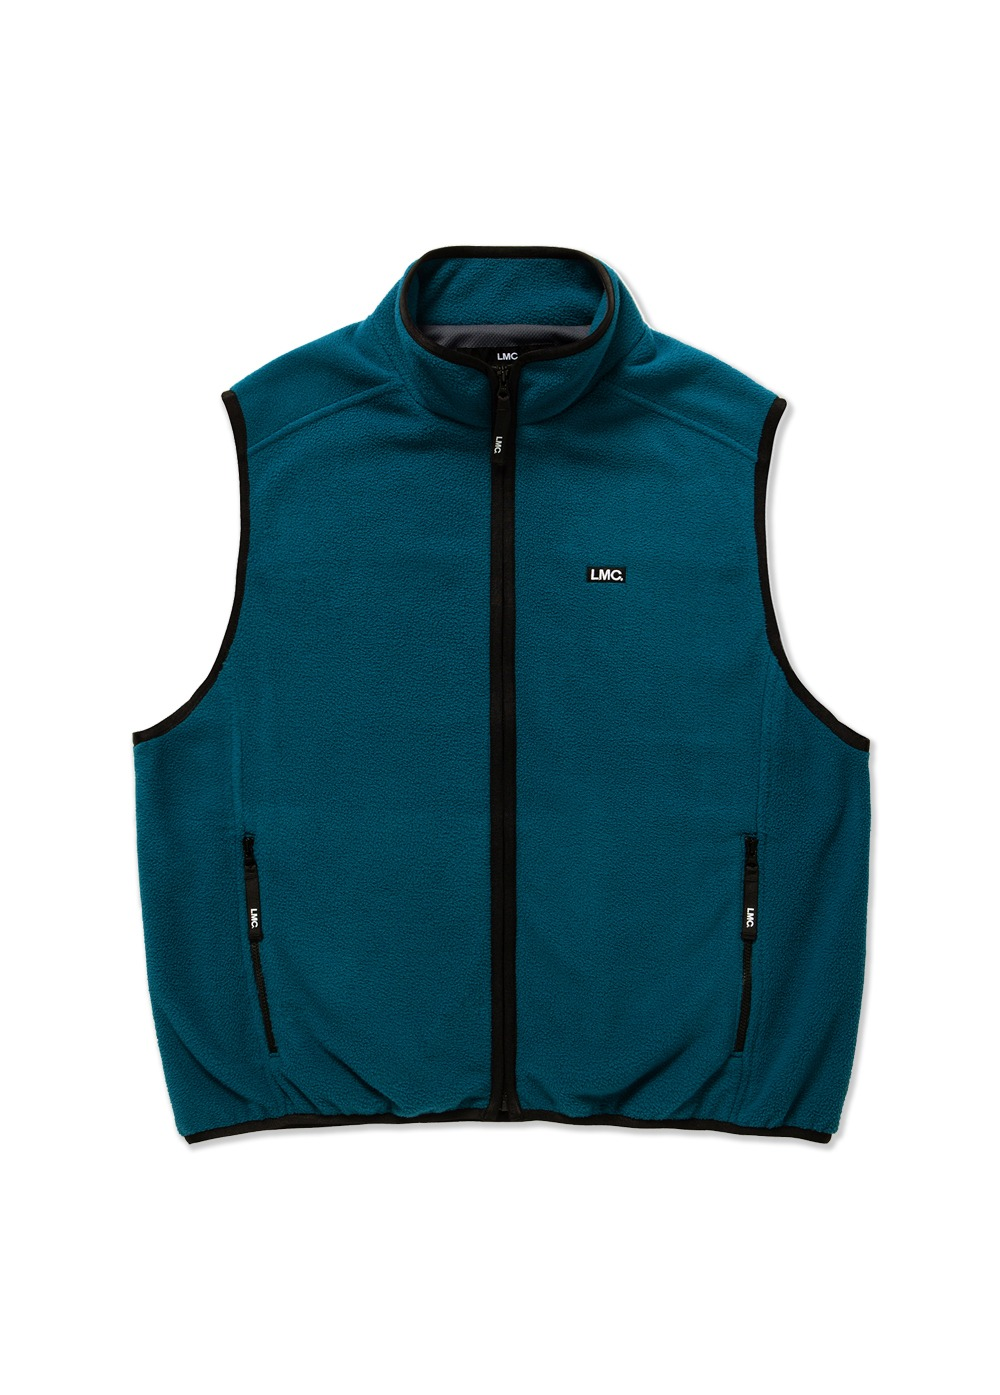 LMC POLAR FLEECE VEST teal green